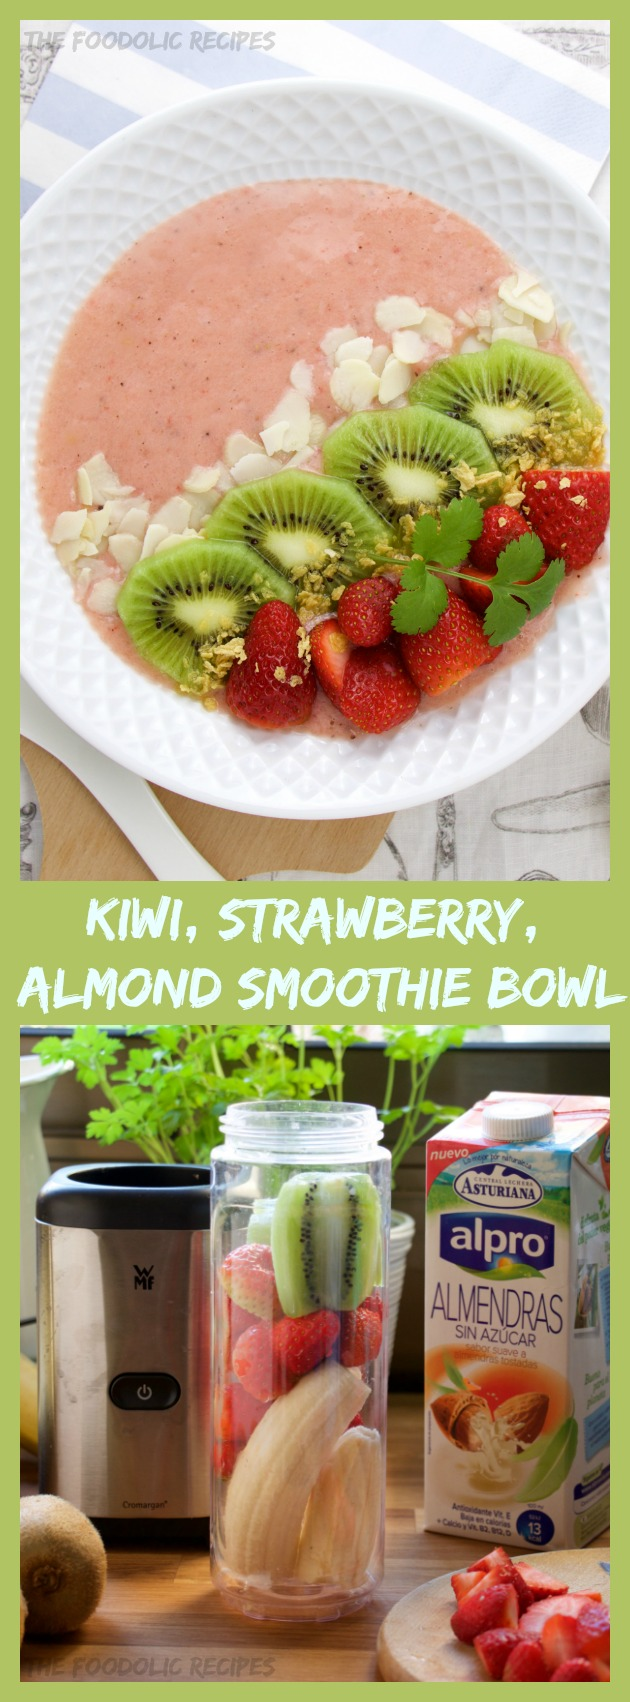 Kiwi, strawberry, banana and almond milk smoothie bowl is a smooth way to refill your vitamins level and start the day fresh. A Lactose-free smoothie.